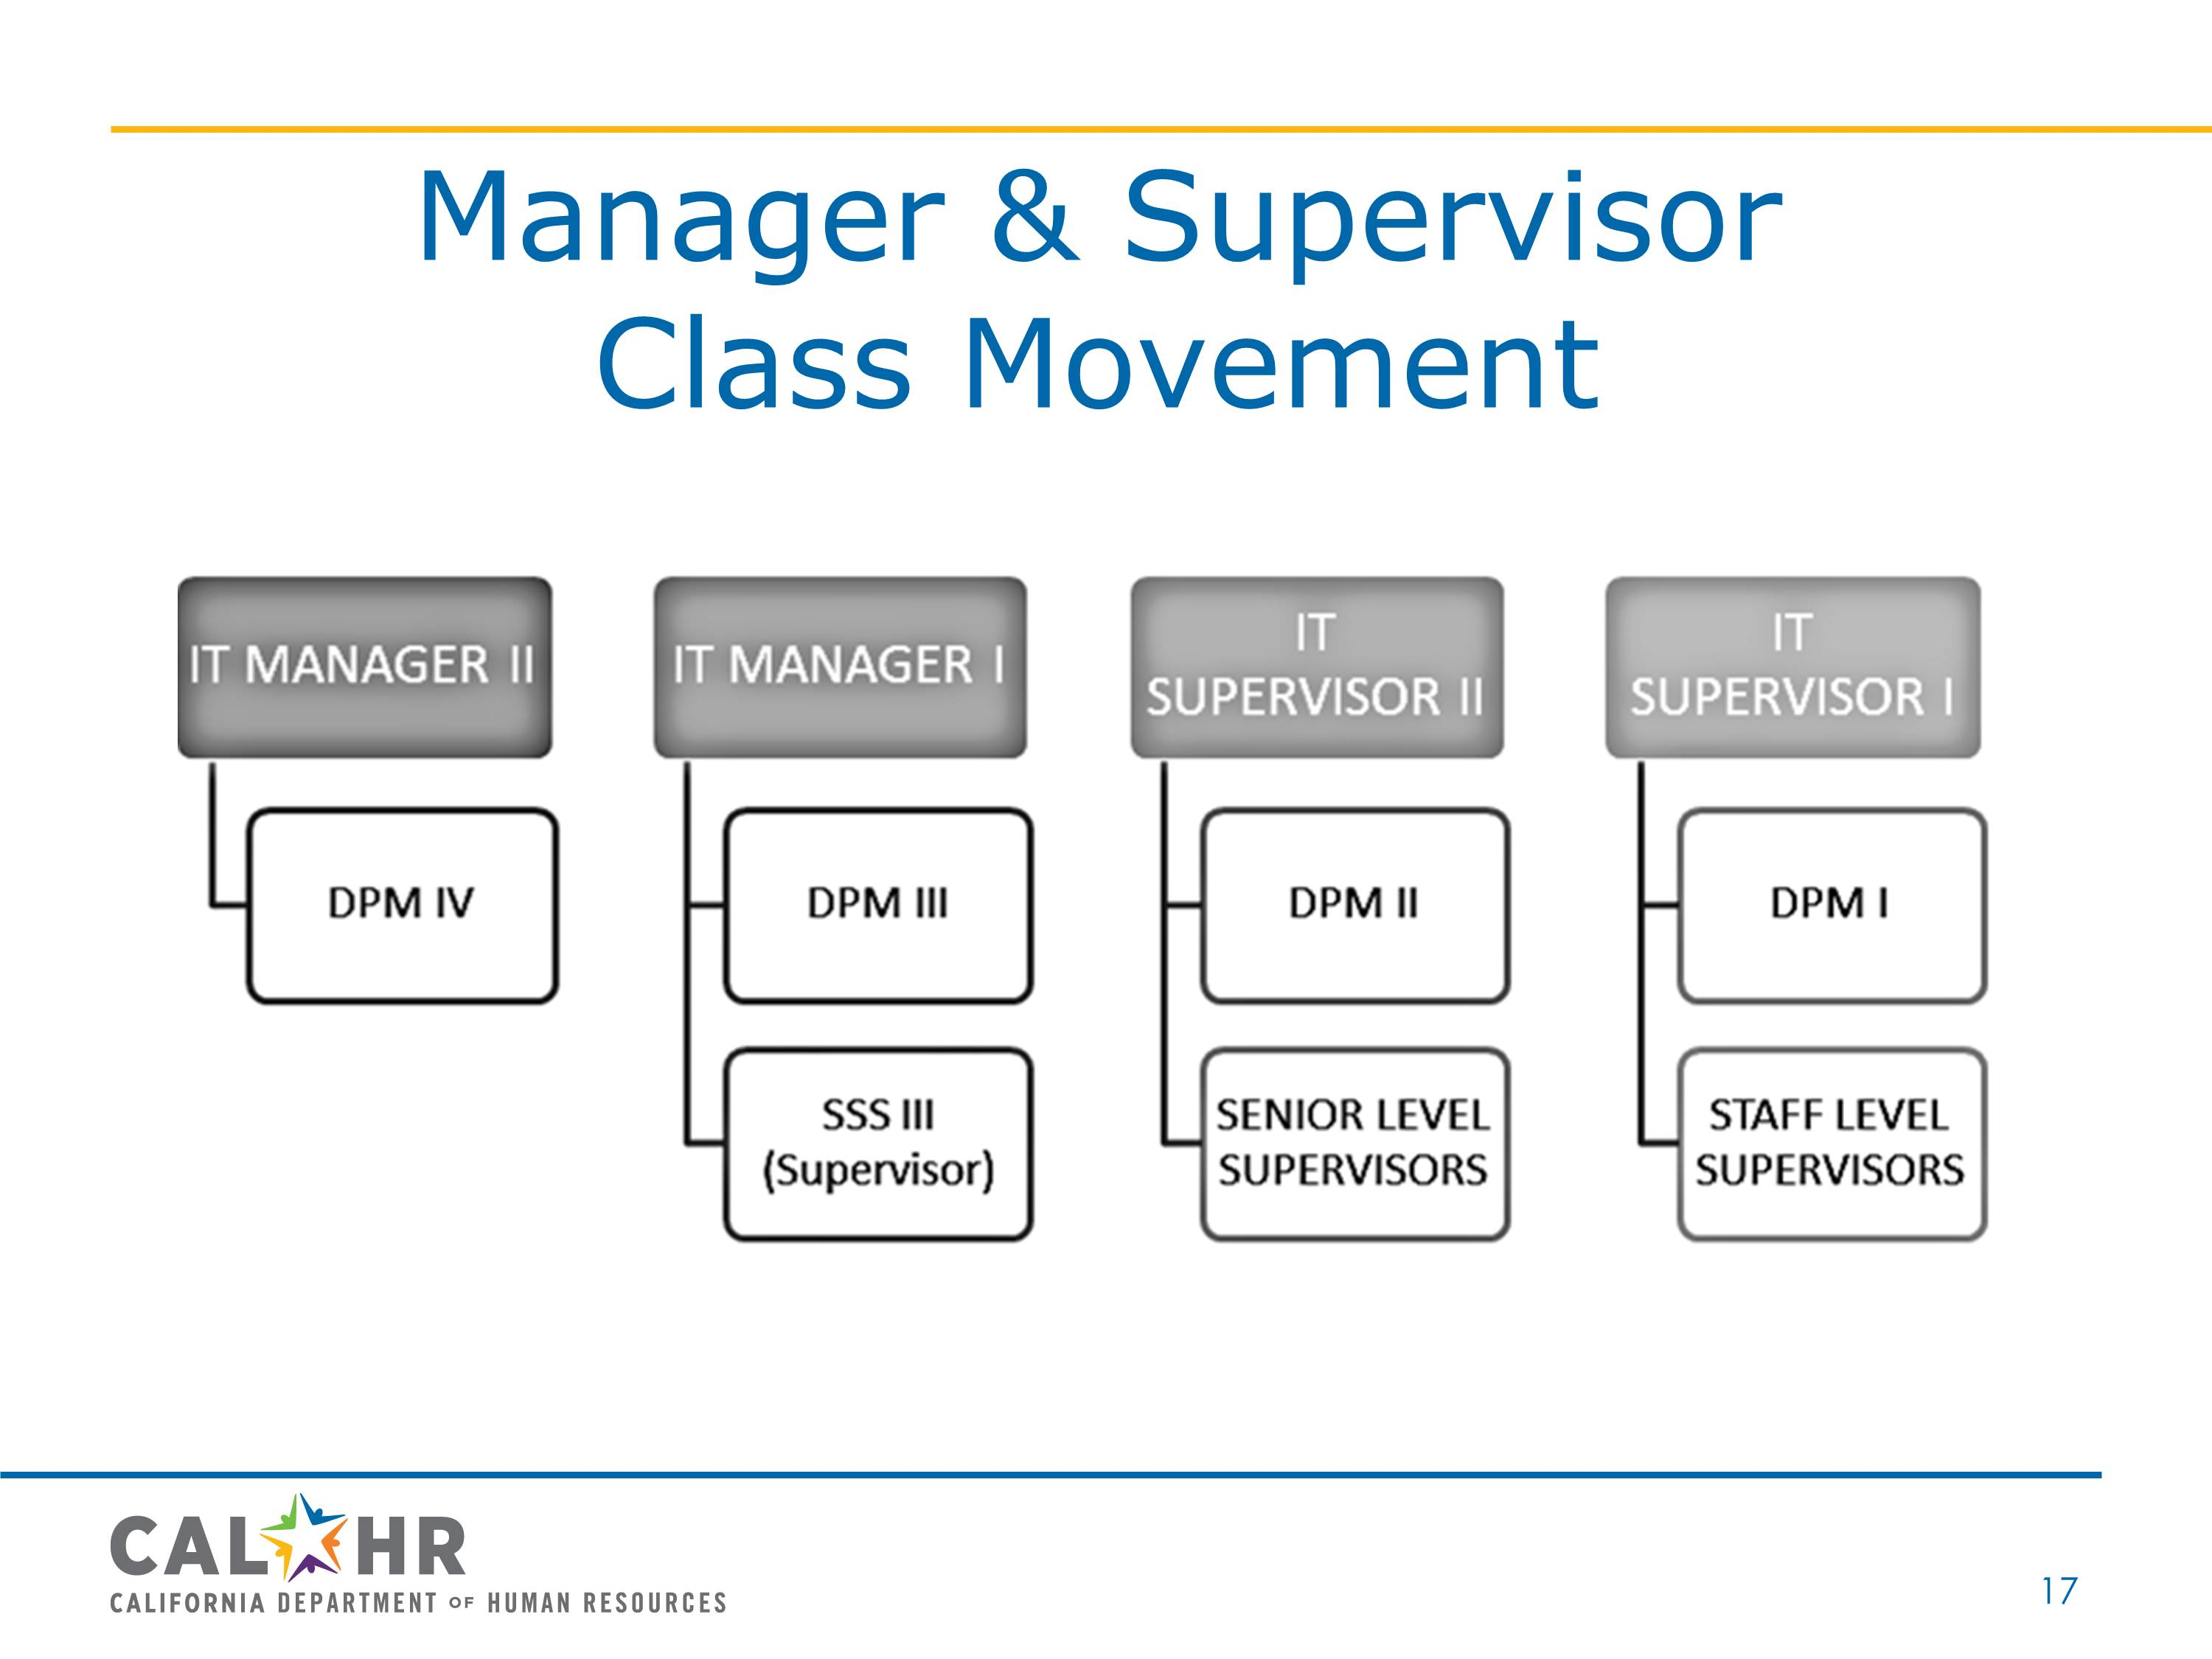 Manager and Supervisor Class Movement